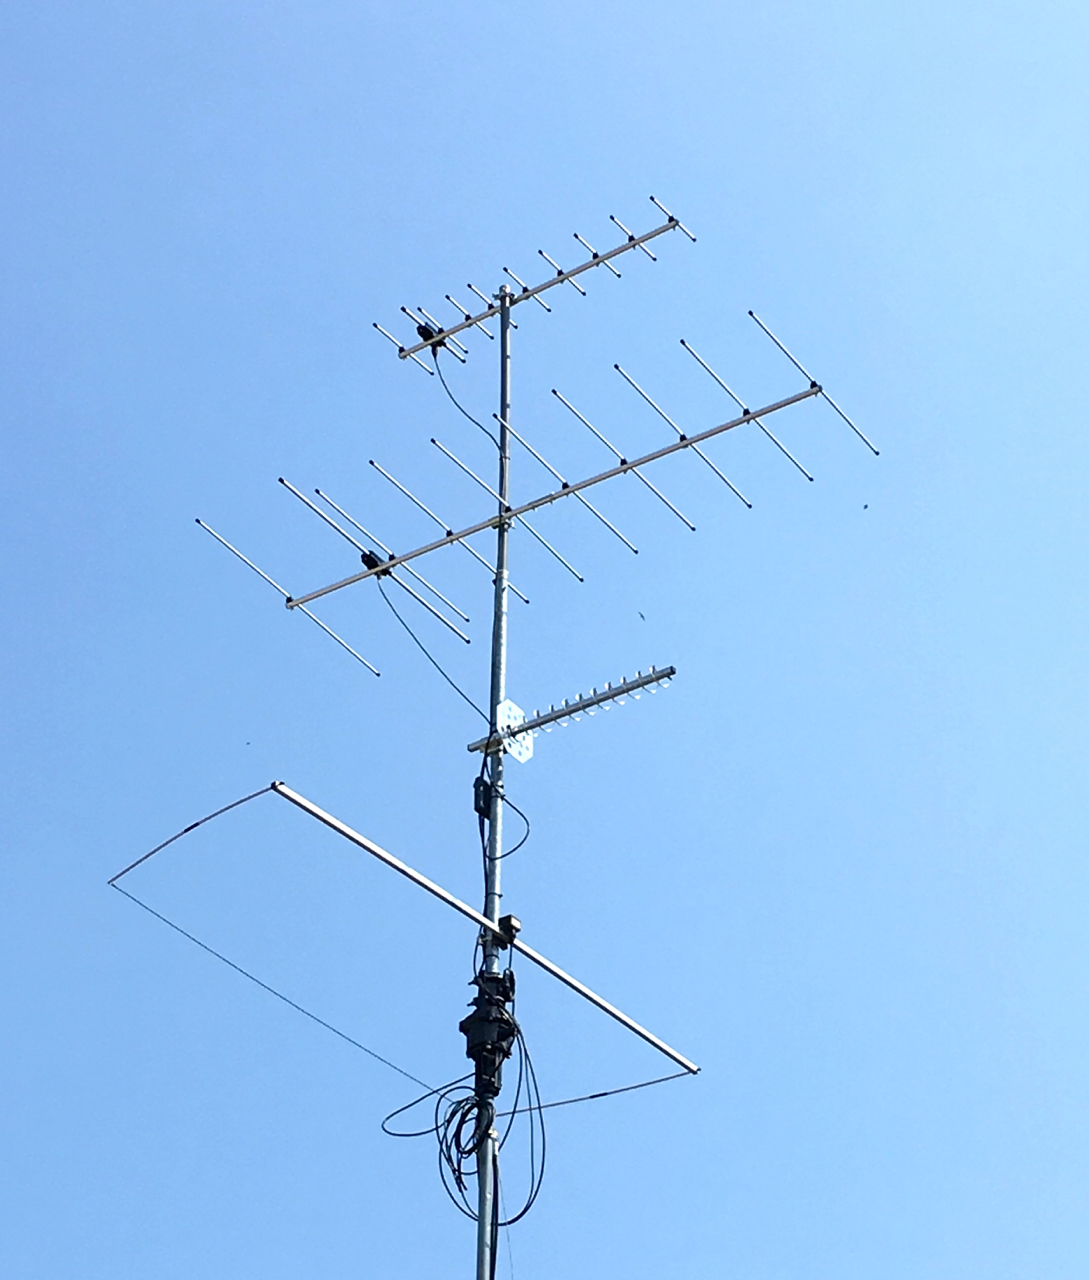 23 Cm Helix Antenna And Preamp K5nd Uhf Preamplifier The Is Wimo That Covers 1250 To 1300 Mhz Its Right Hand Circular Polarization I Figure It Should Work Reasonably Well For Both